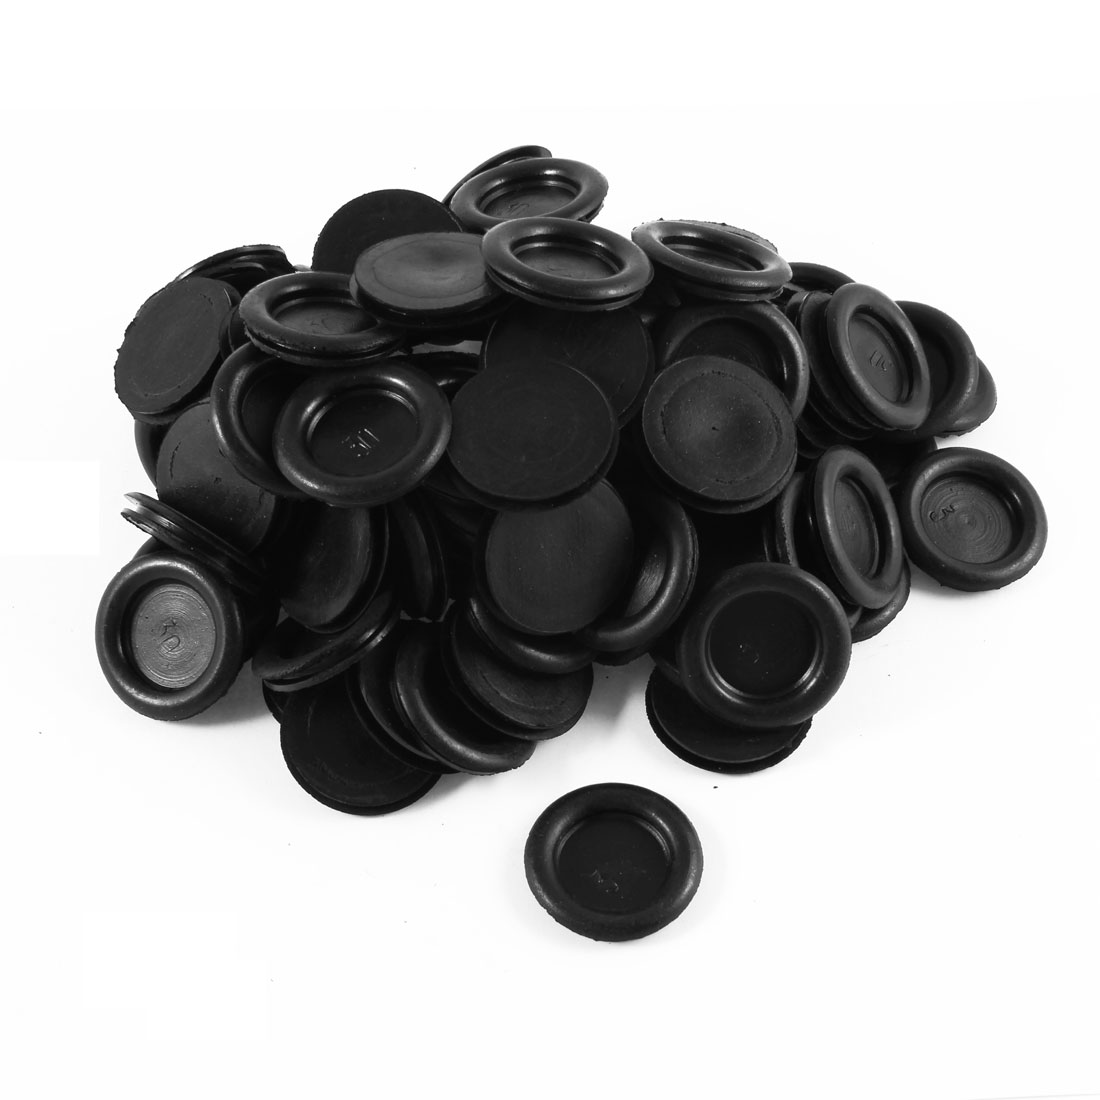 100PCS Black Wire Cable Protective Armature Rubber Grommets 30mm Diameter